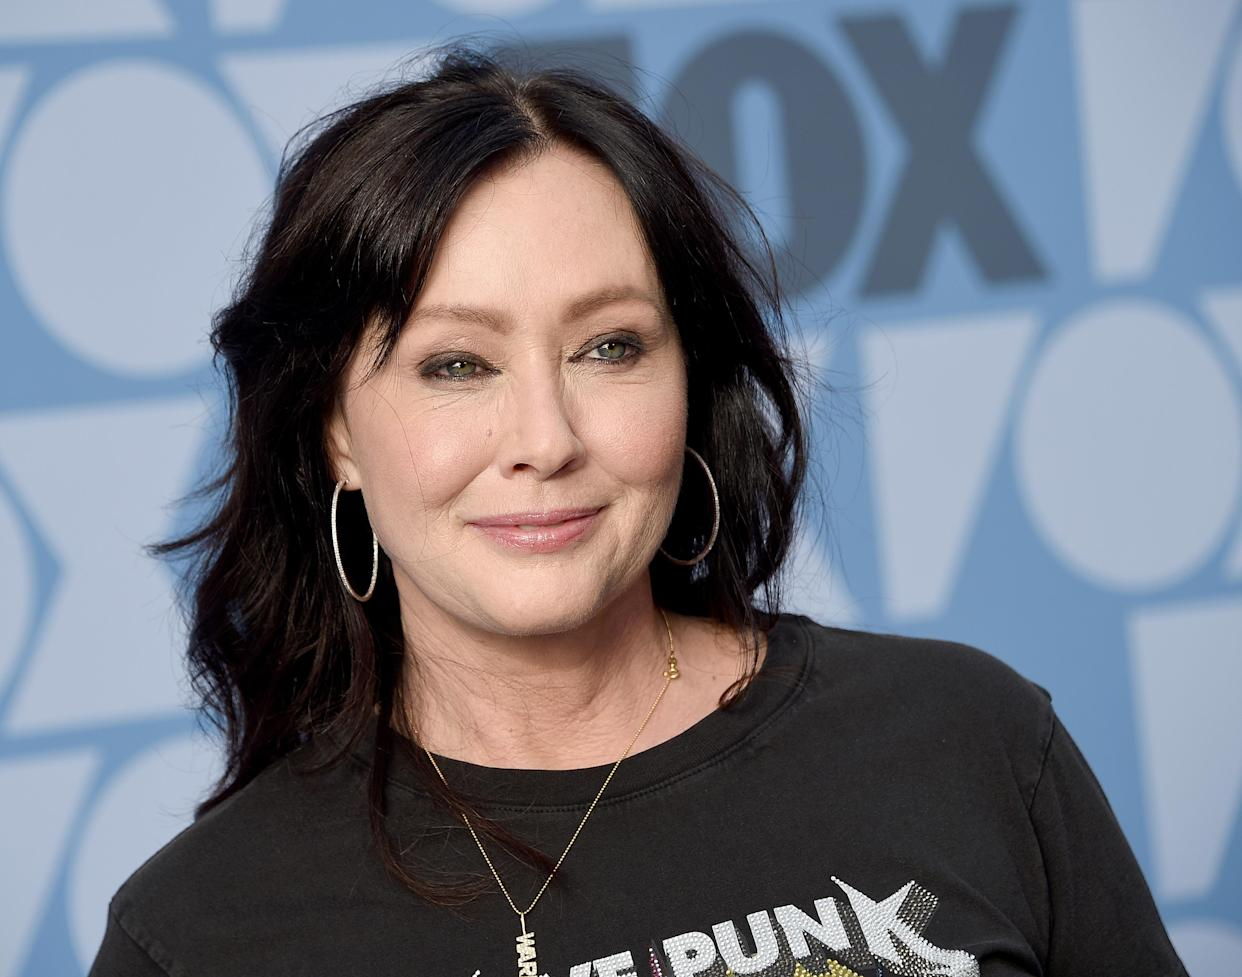 Shannen Doherty posts personal photos amid stage IV breast cancer. (FilmMagic)